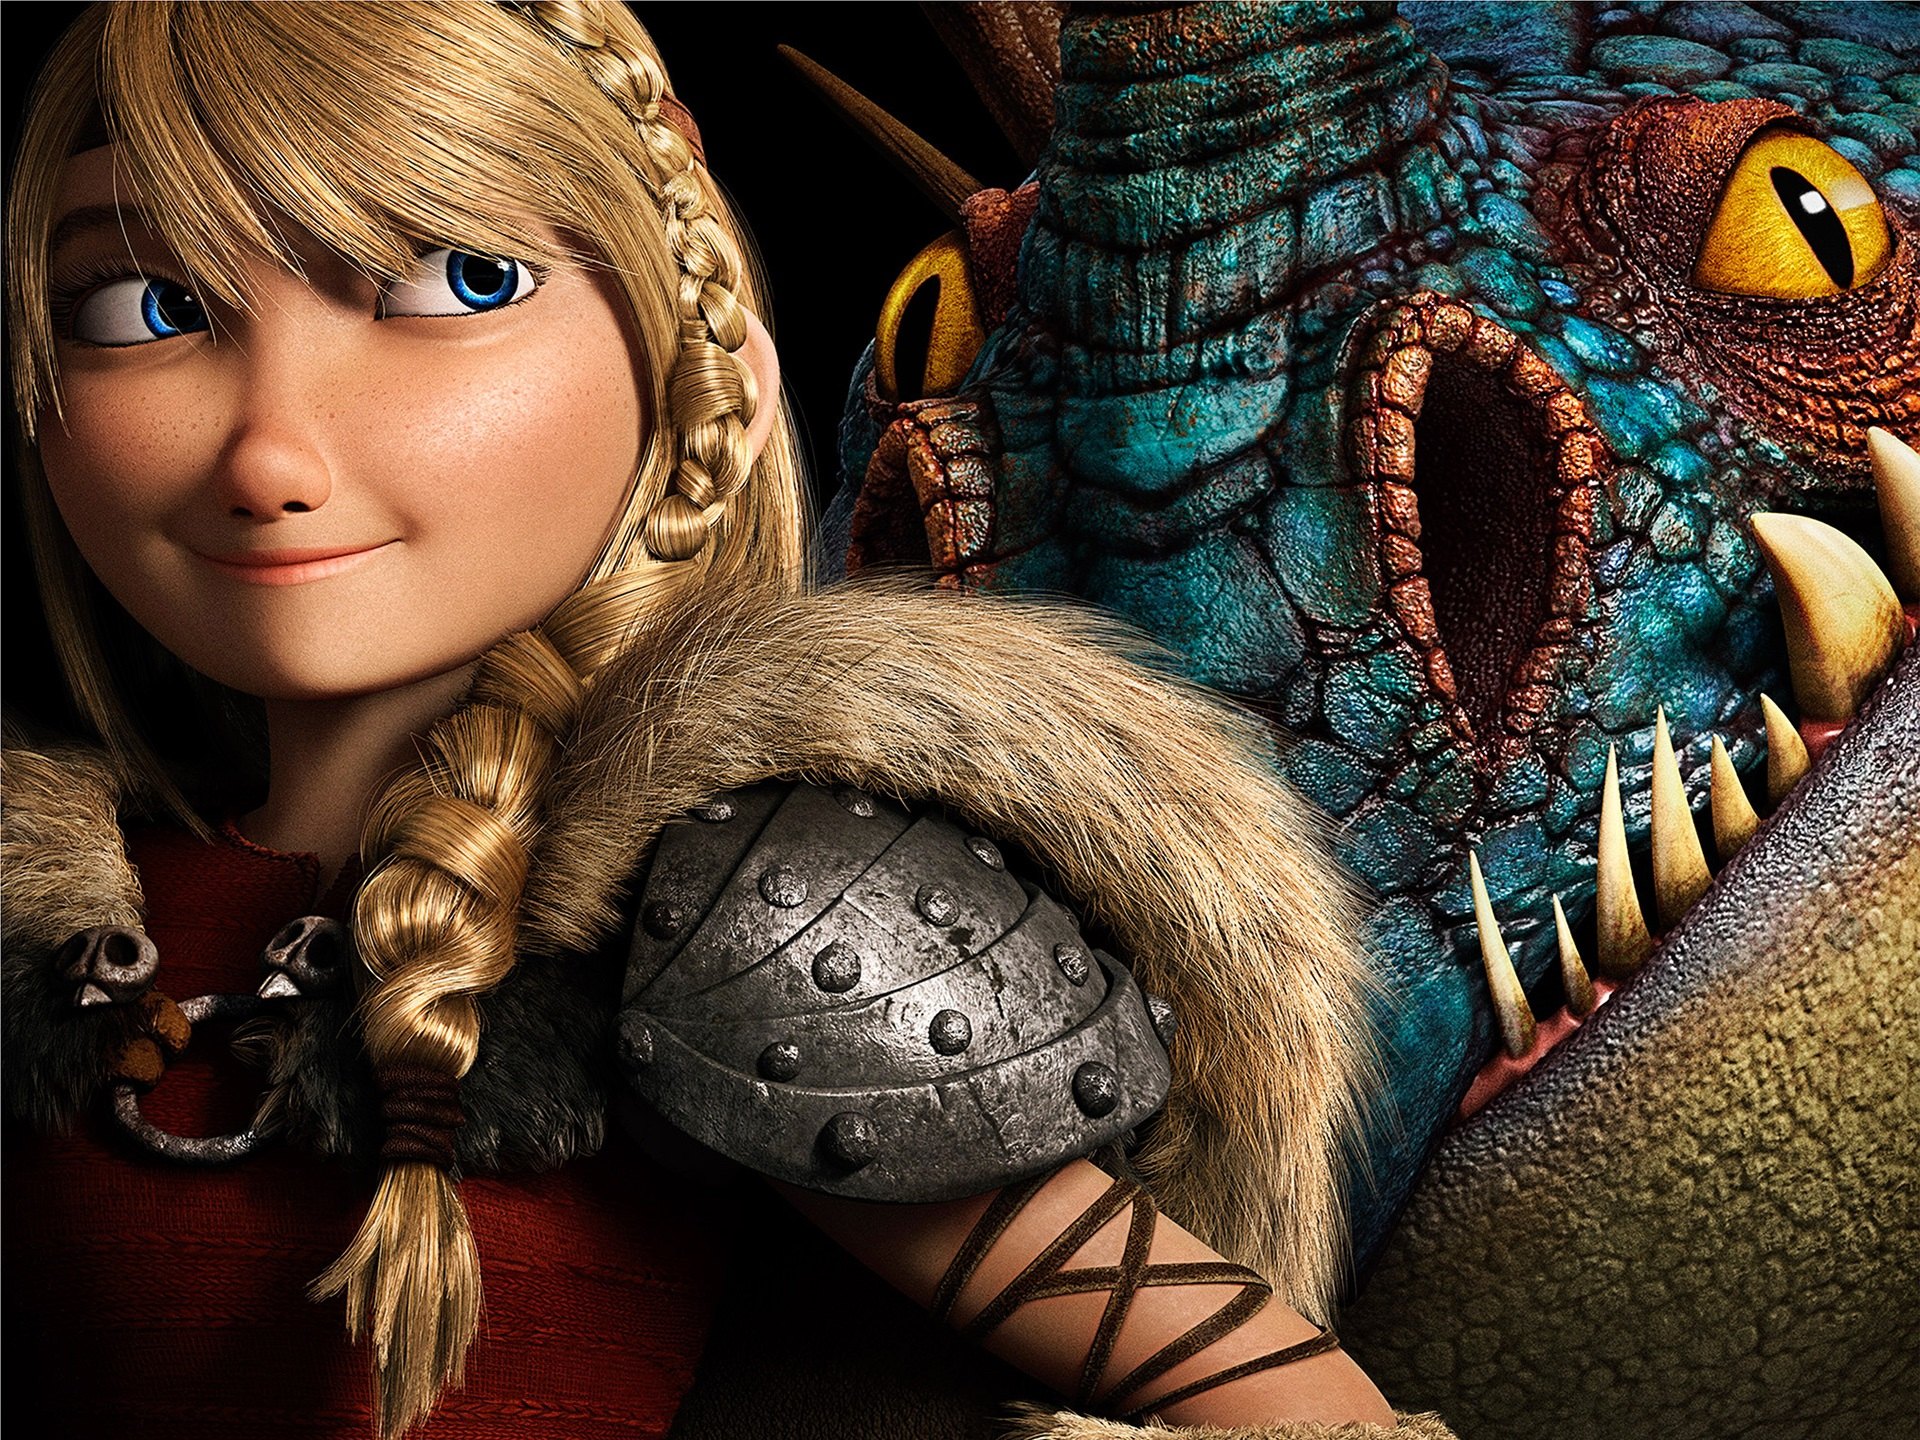 Wallpaper How To Train Your Dragon 2 1920x1440 Hd Picture Image